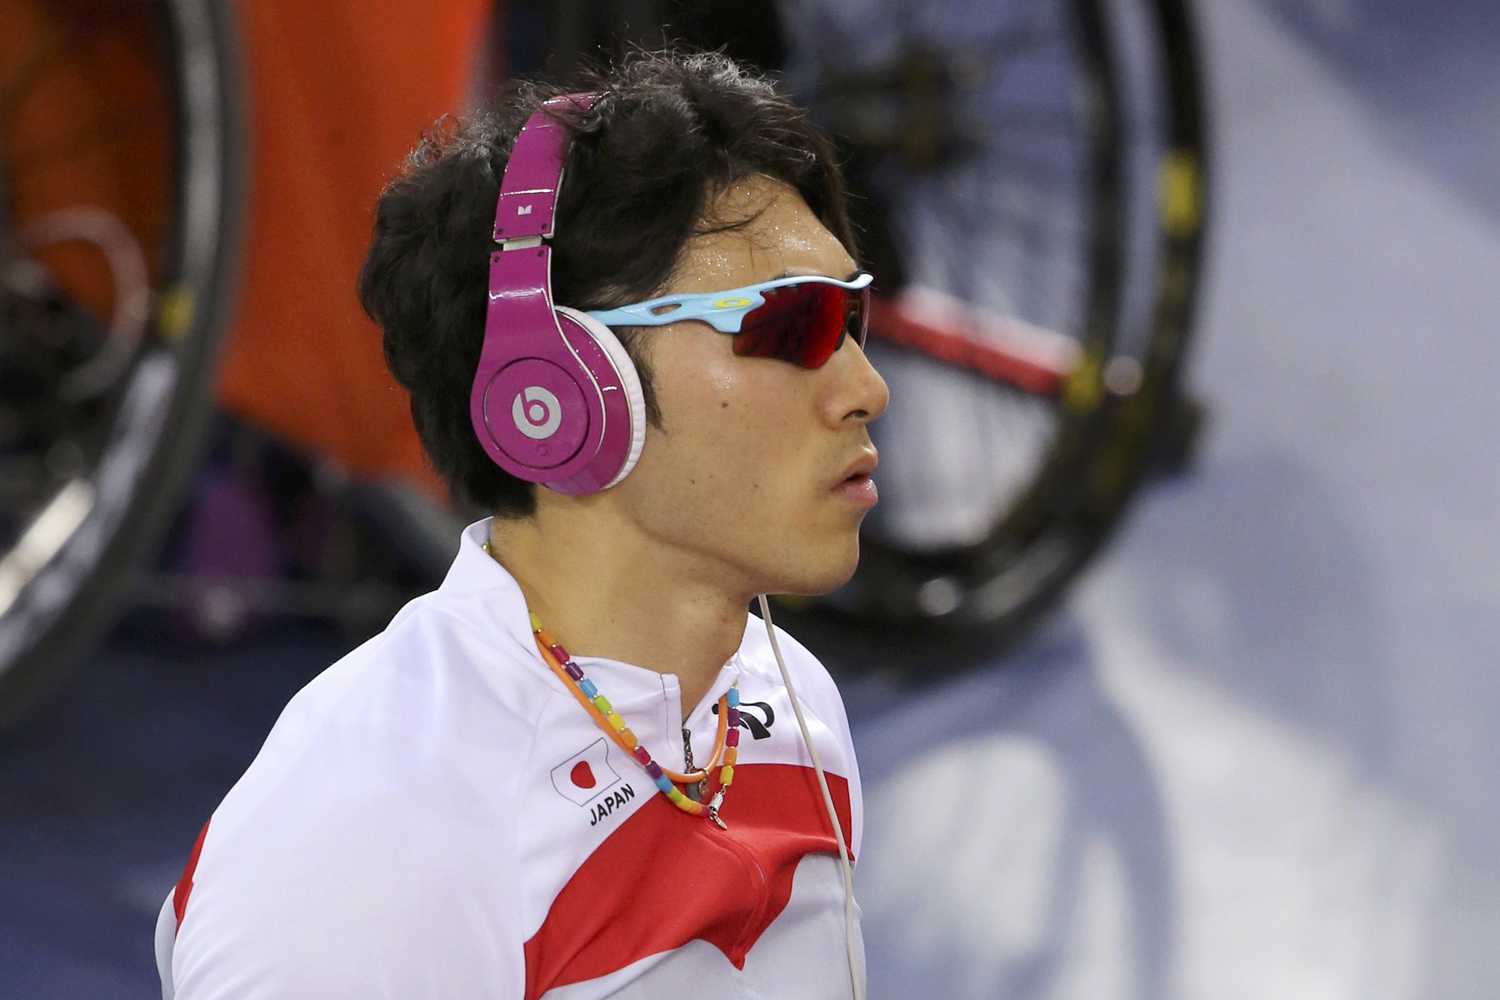 British Olympians Get Static Over Beats By Dre Headphones